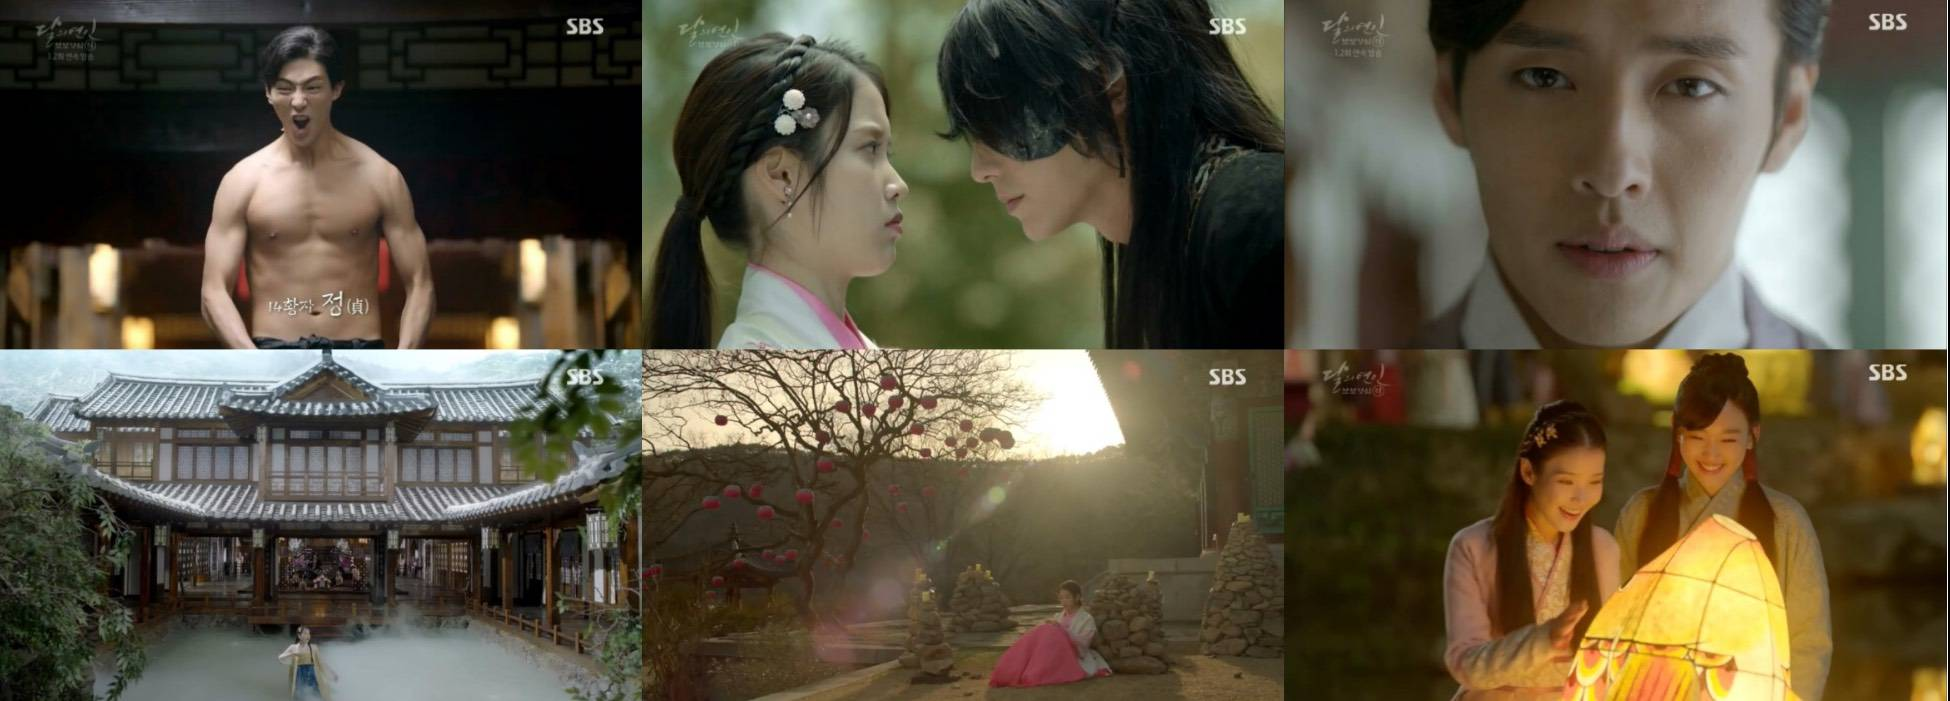 Moon lovers scarlet heart ryeo episode 2 2016 - The Pacing In Scarlet Heart Ryeo